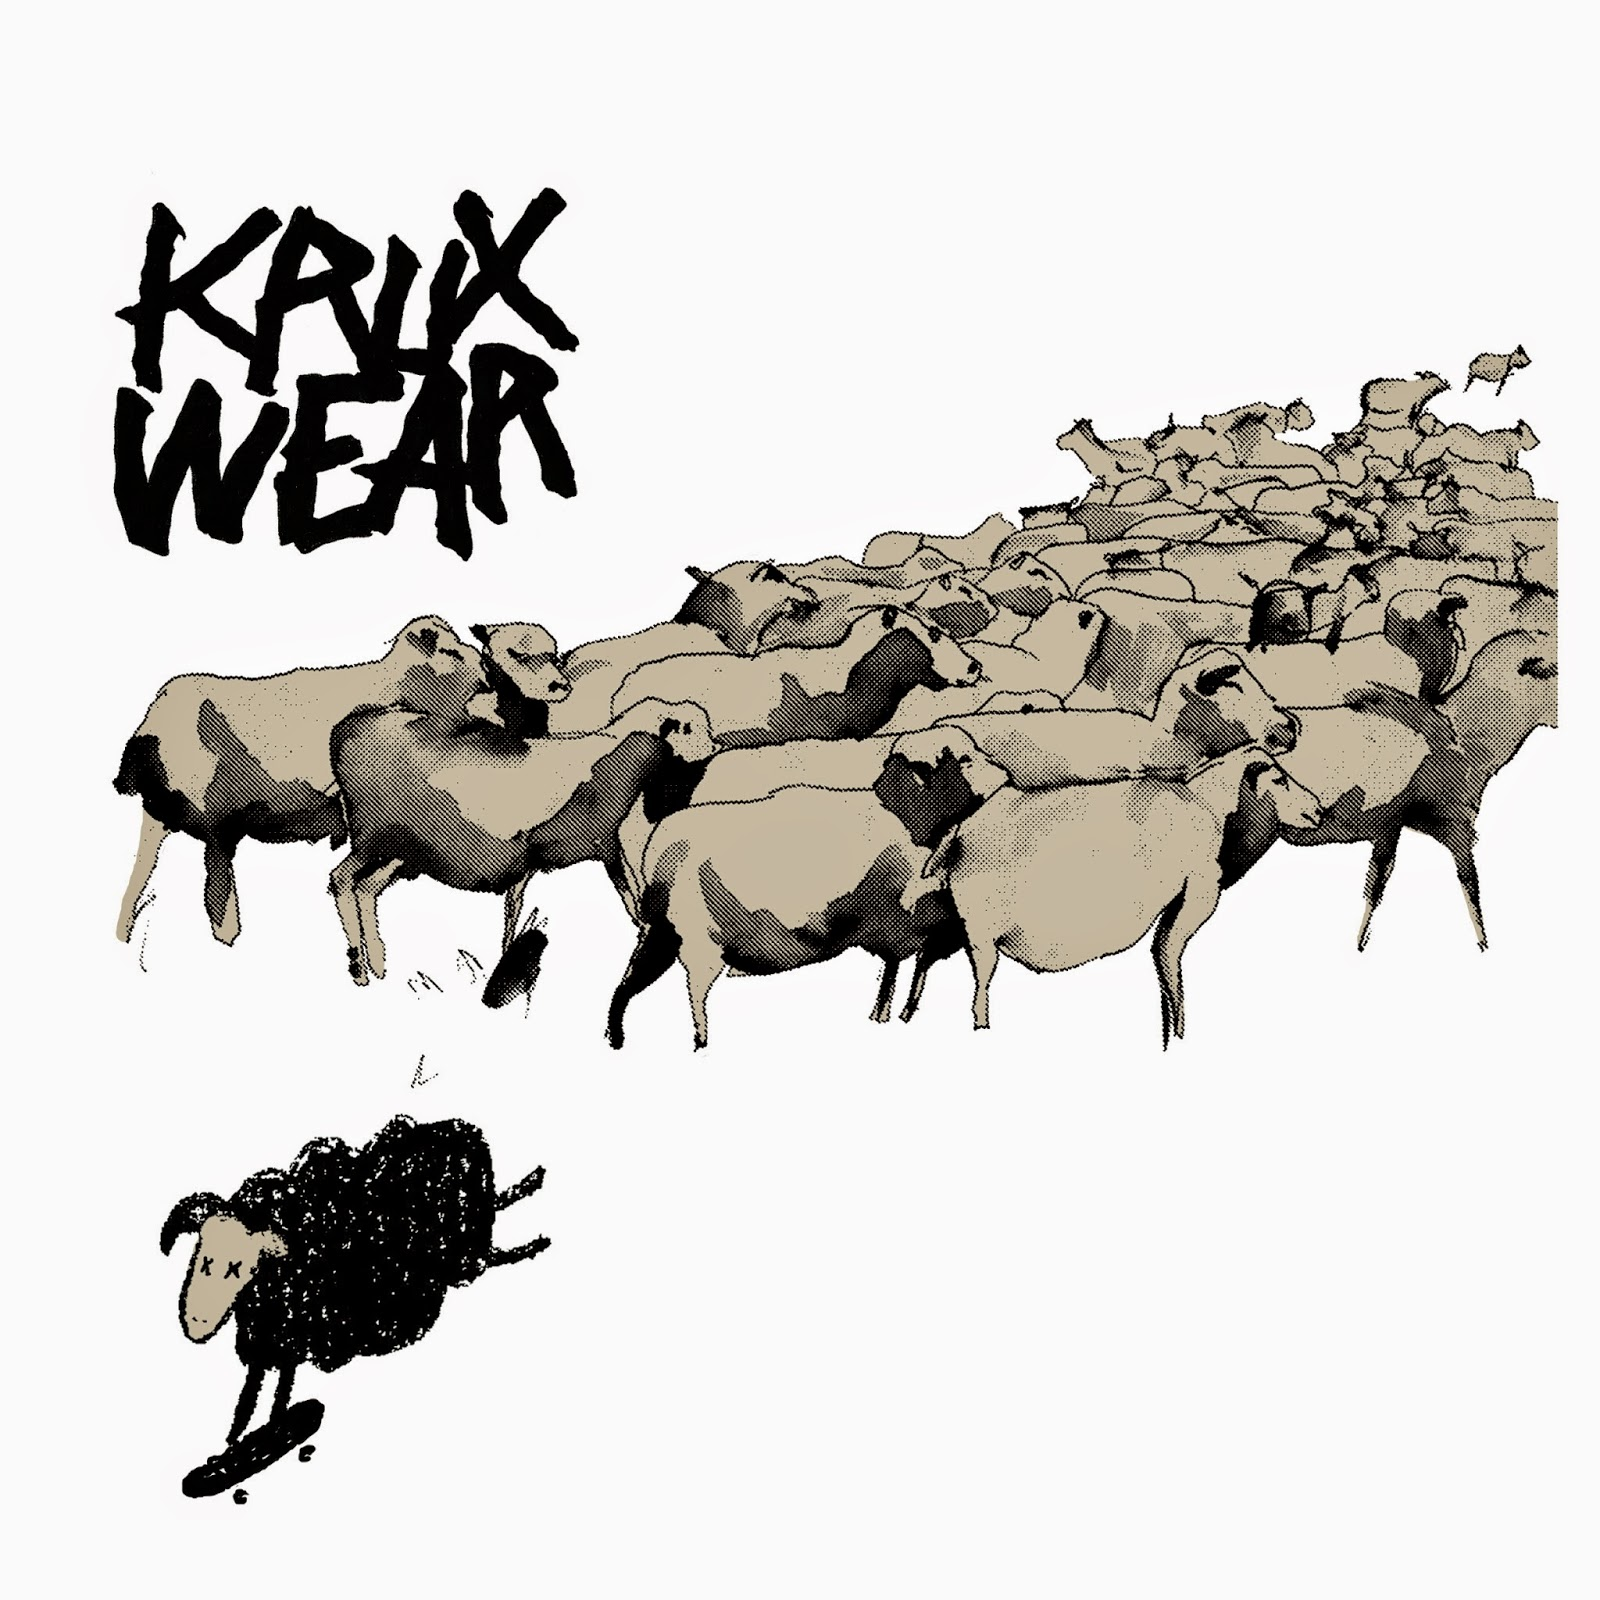 http://kruxwear.blogspot.com/2014/08/kruxwear-out-of-set.html